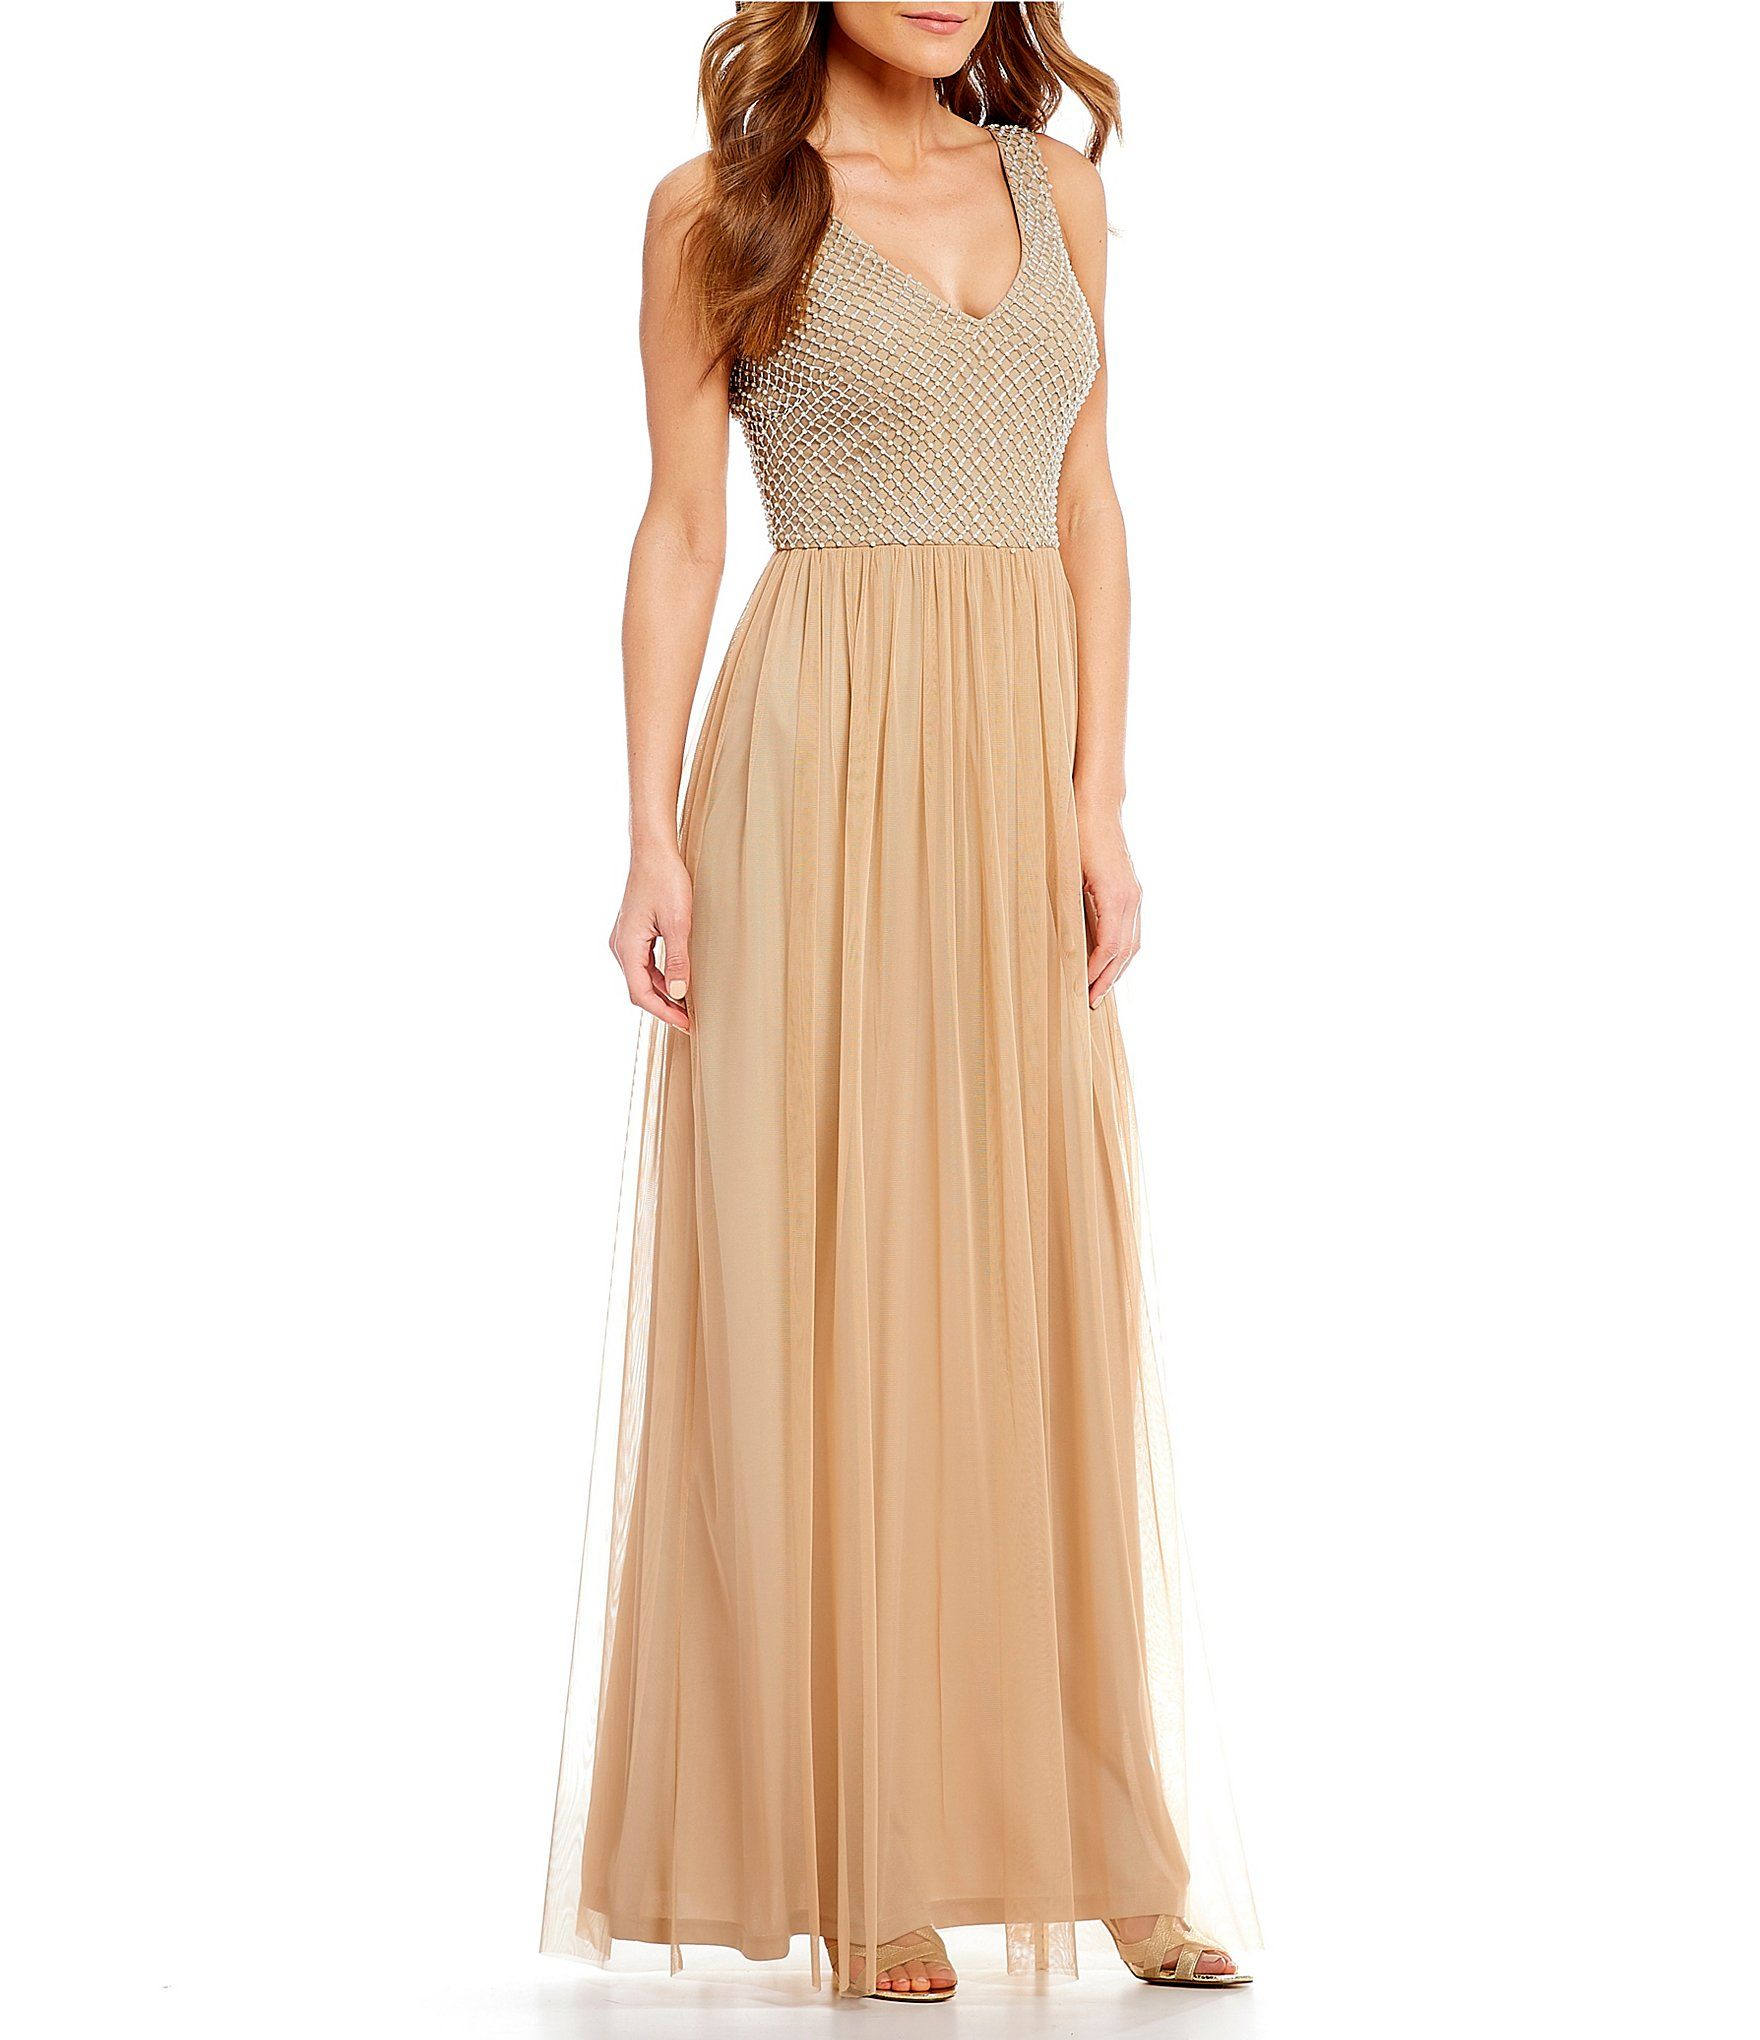 7a64954ce64 Adrianna Papell Long Tulle Skirt Beaded Gown  Dillards